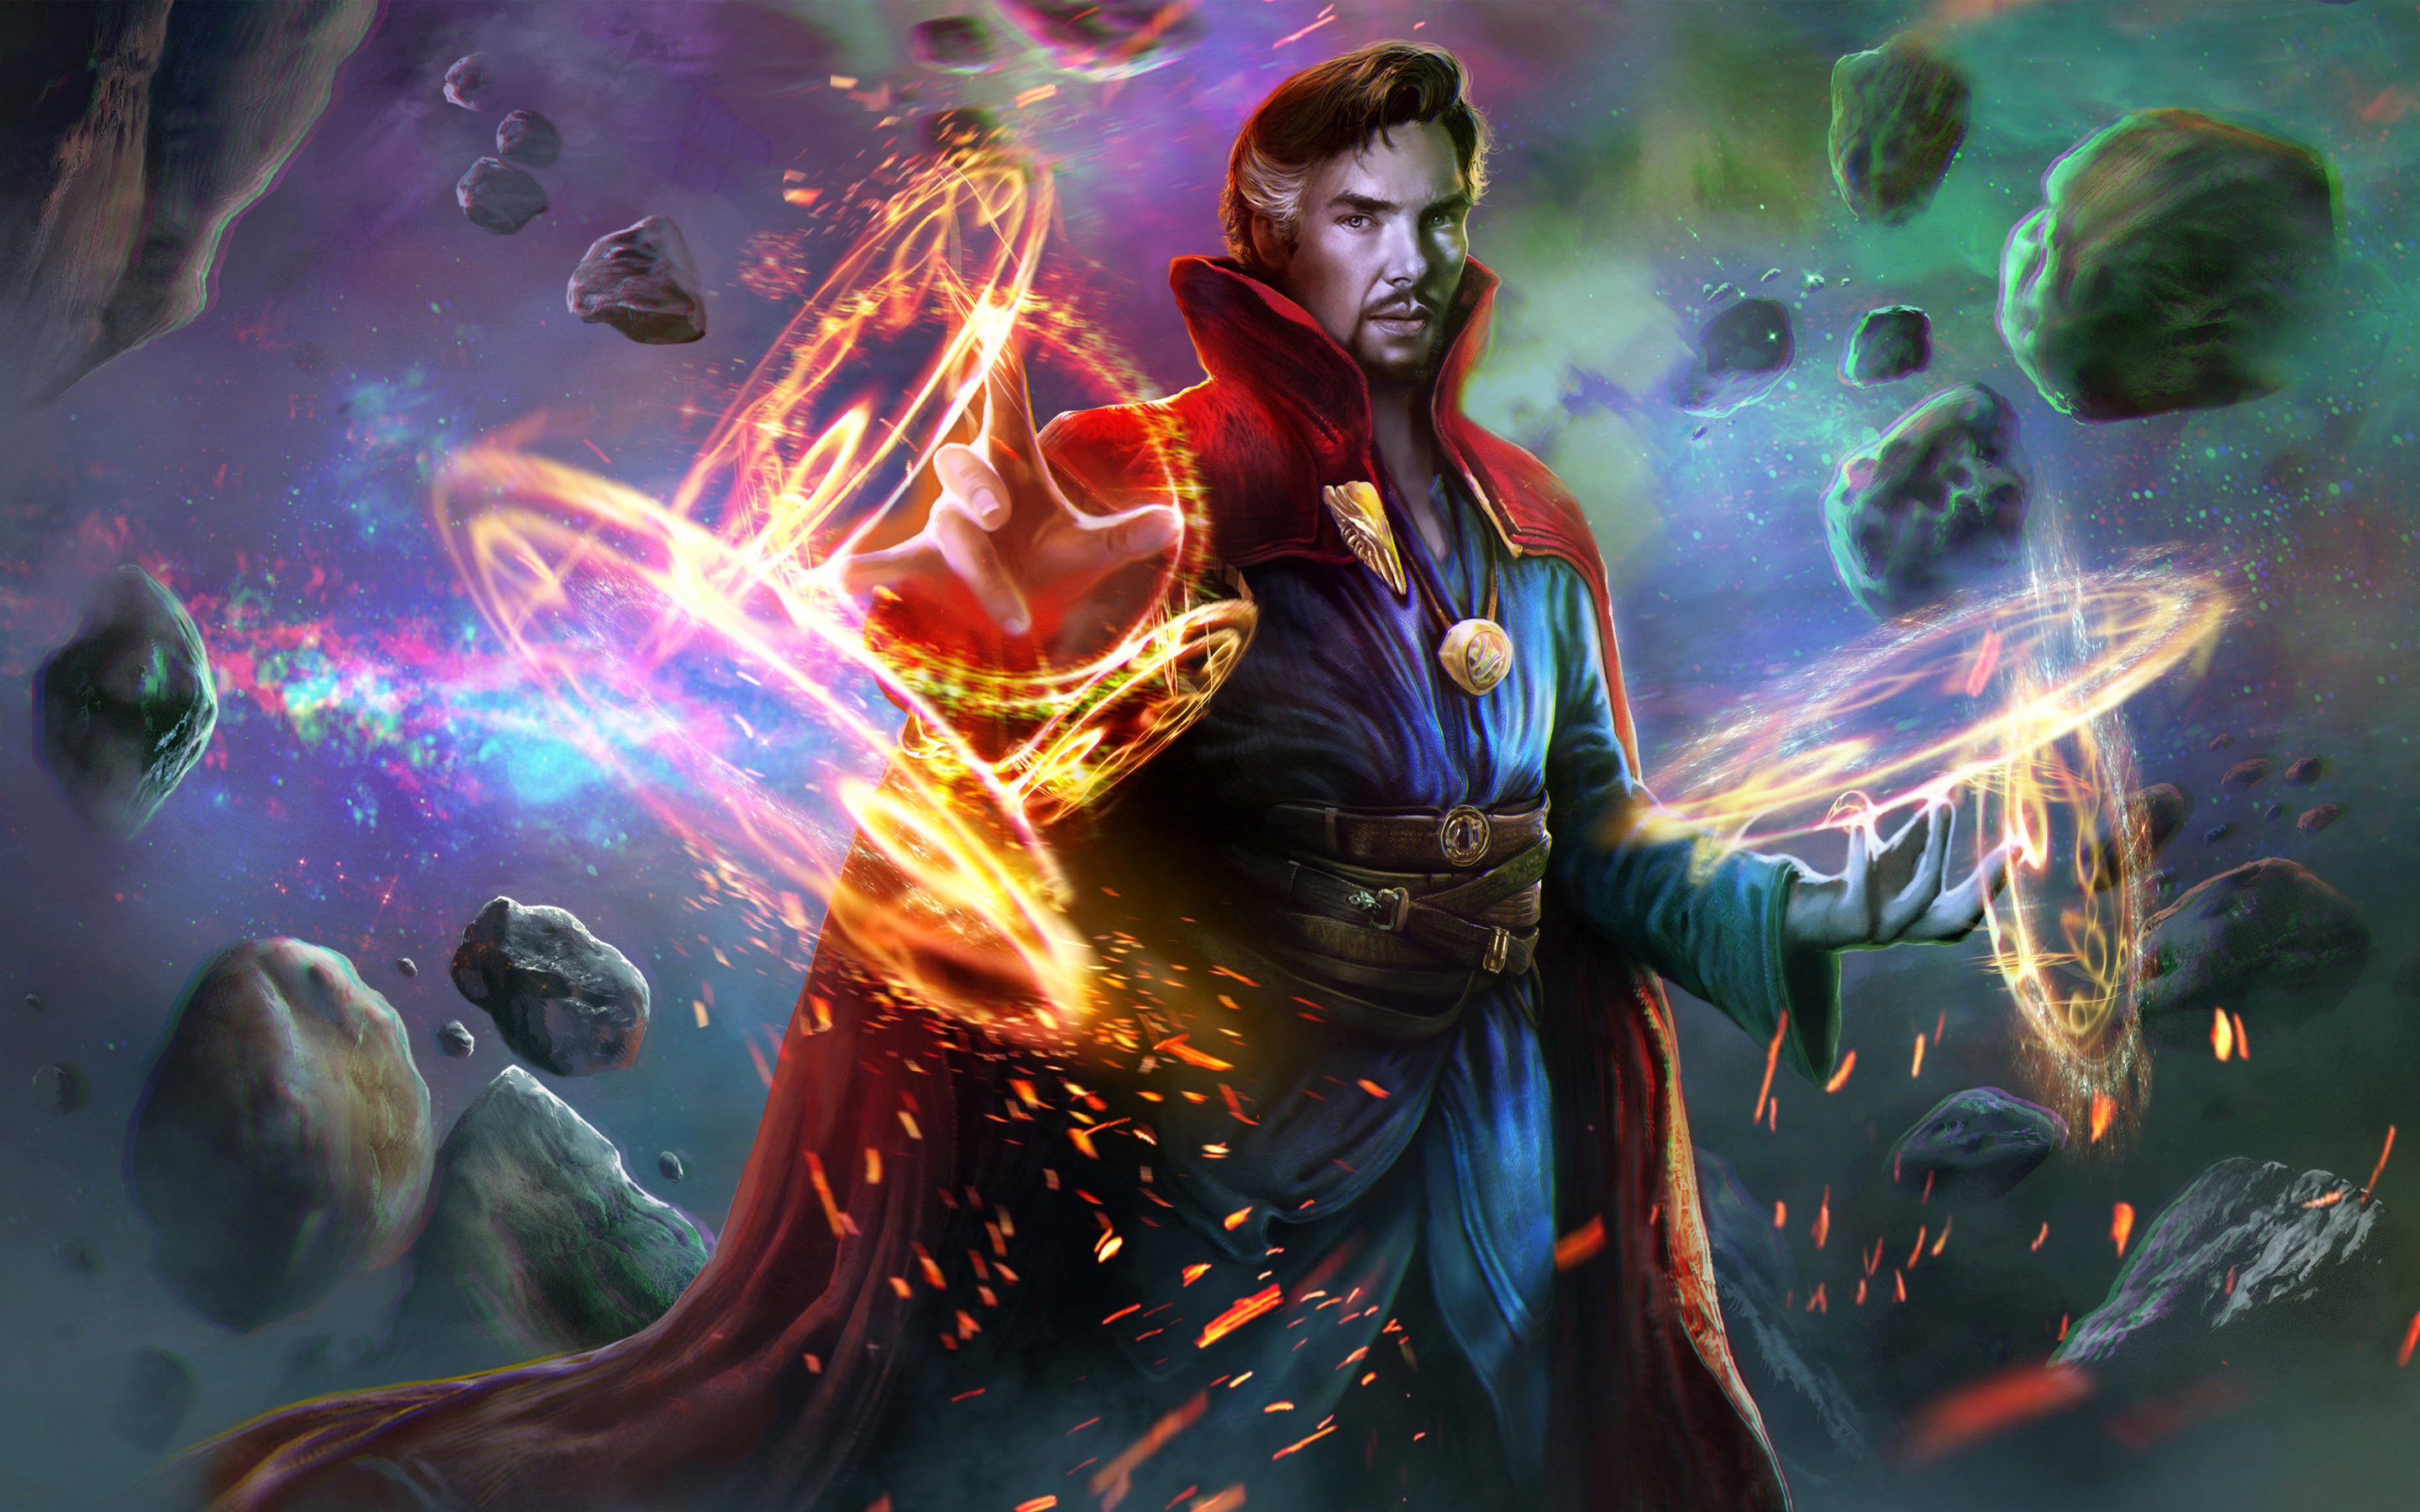 download dr strange movie in hindi dubbed